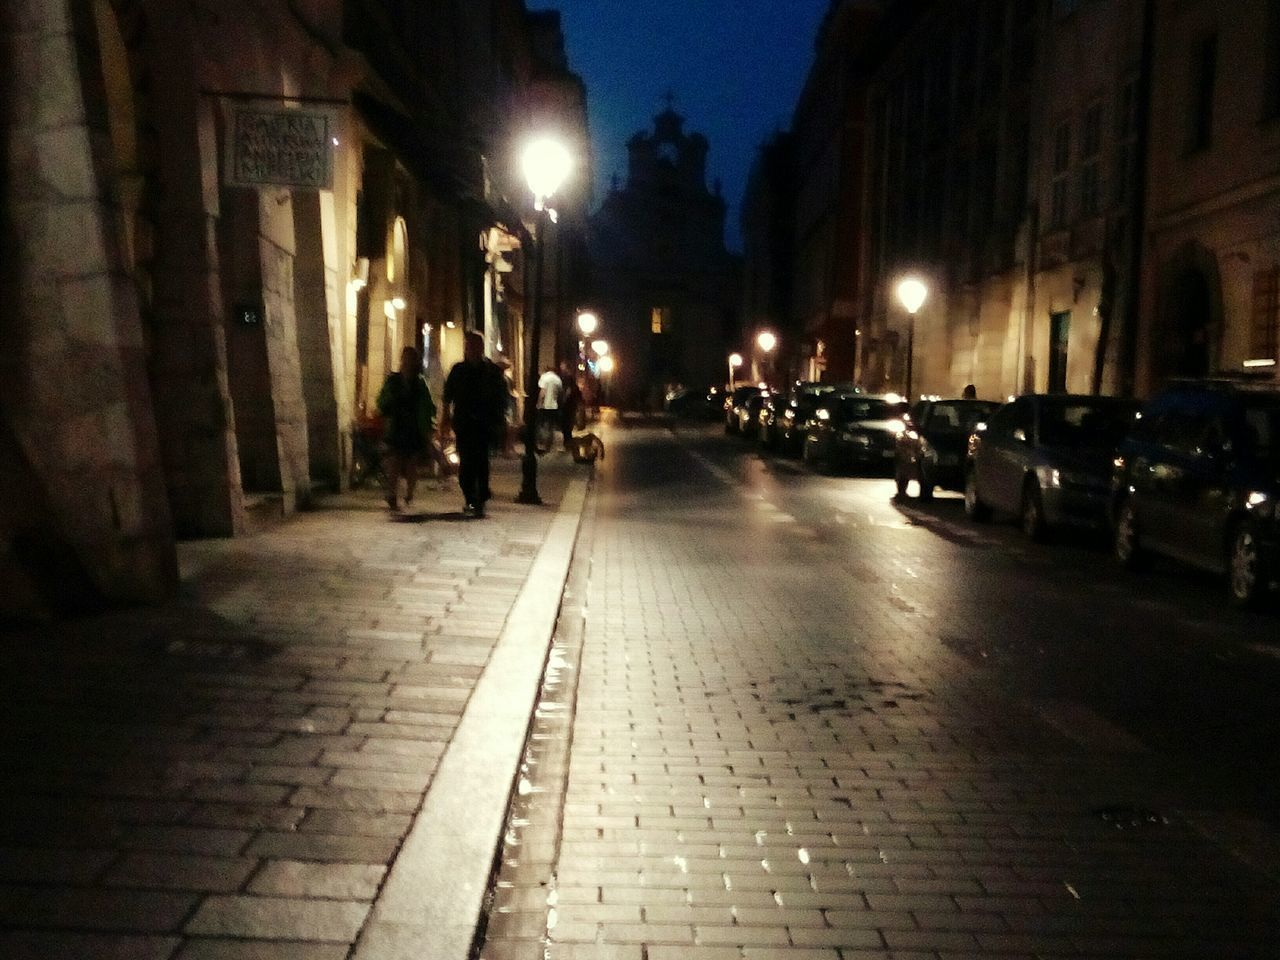 architecture, built structure, street, walking, building exterior, night, illuminated, city, real people, outdoors